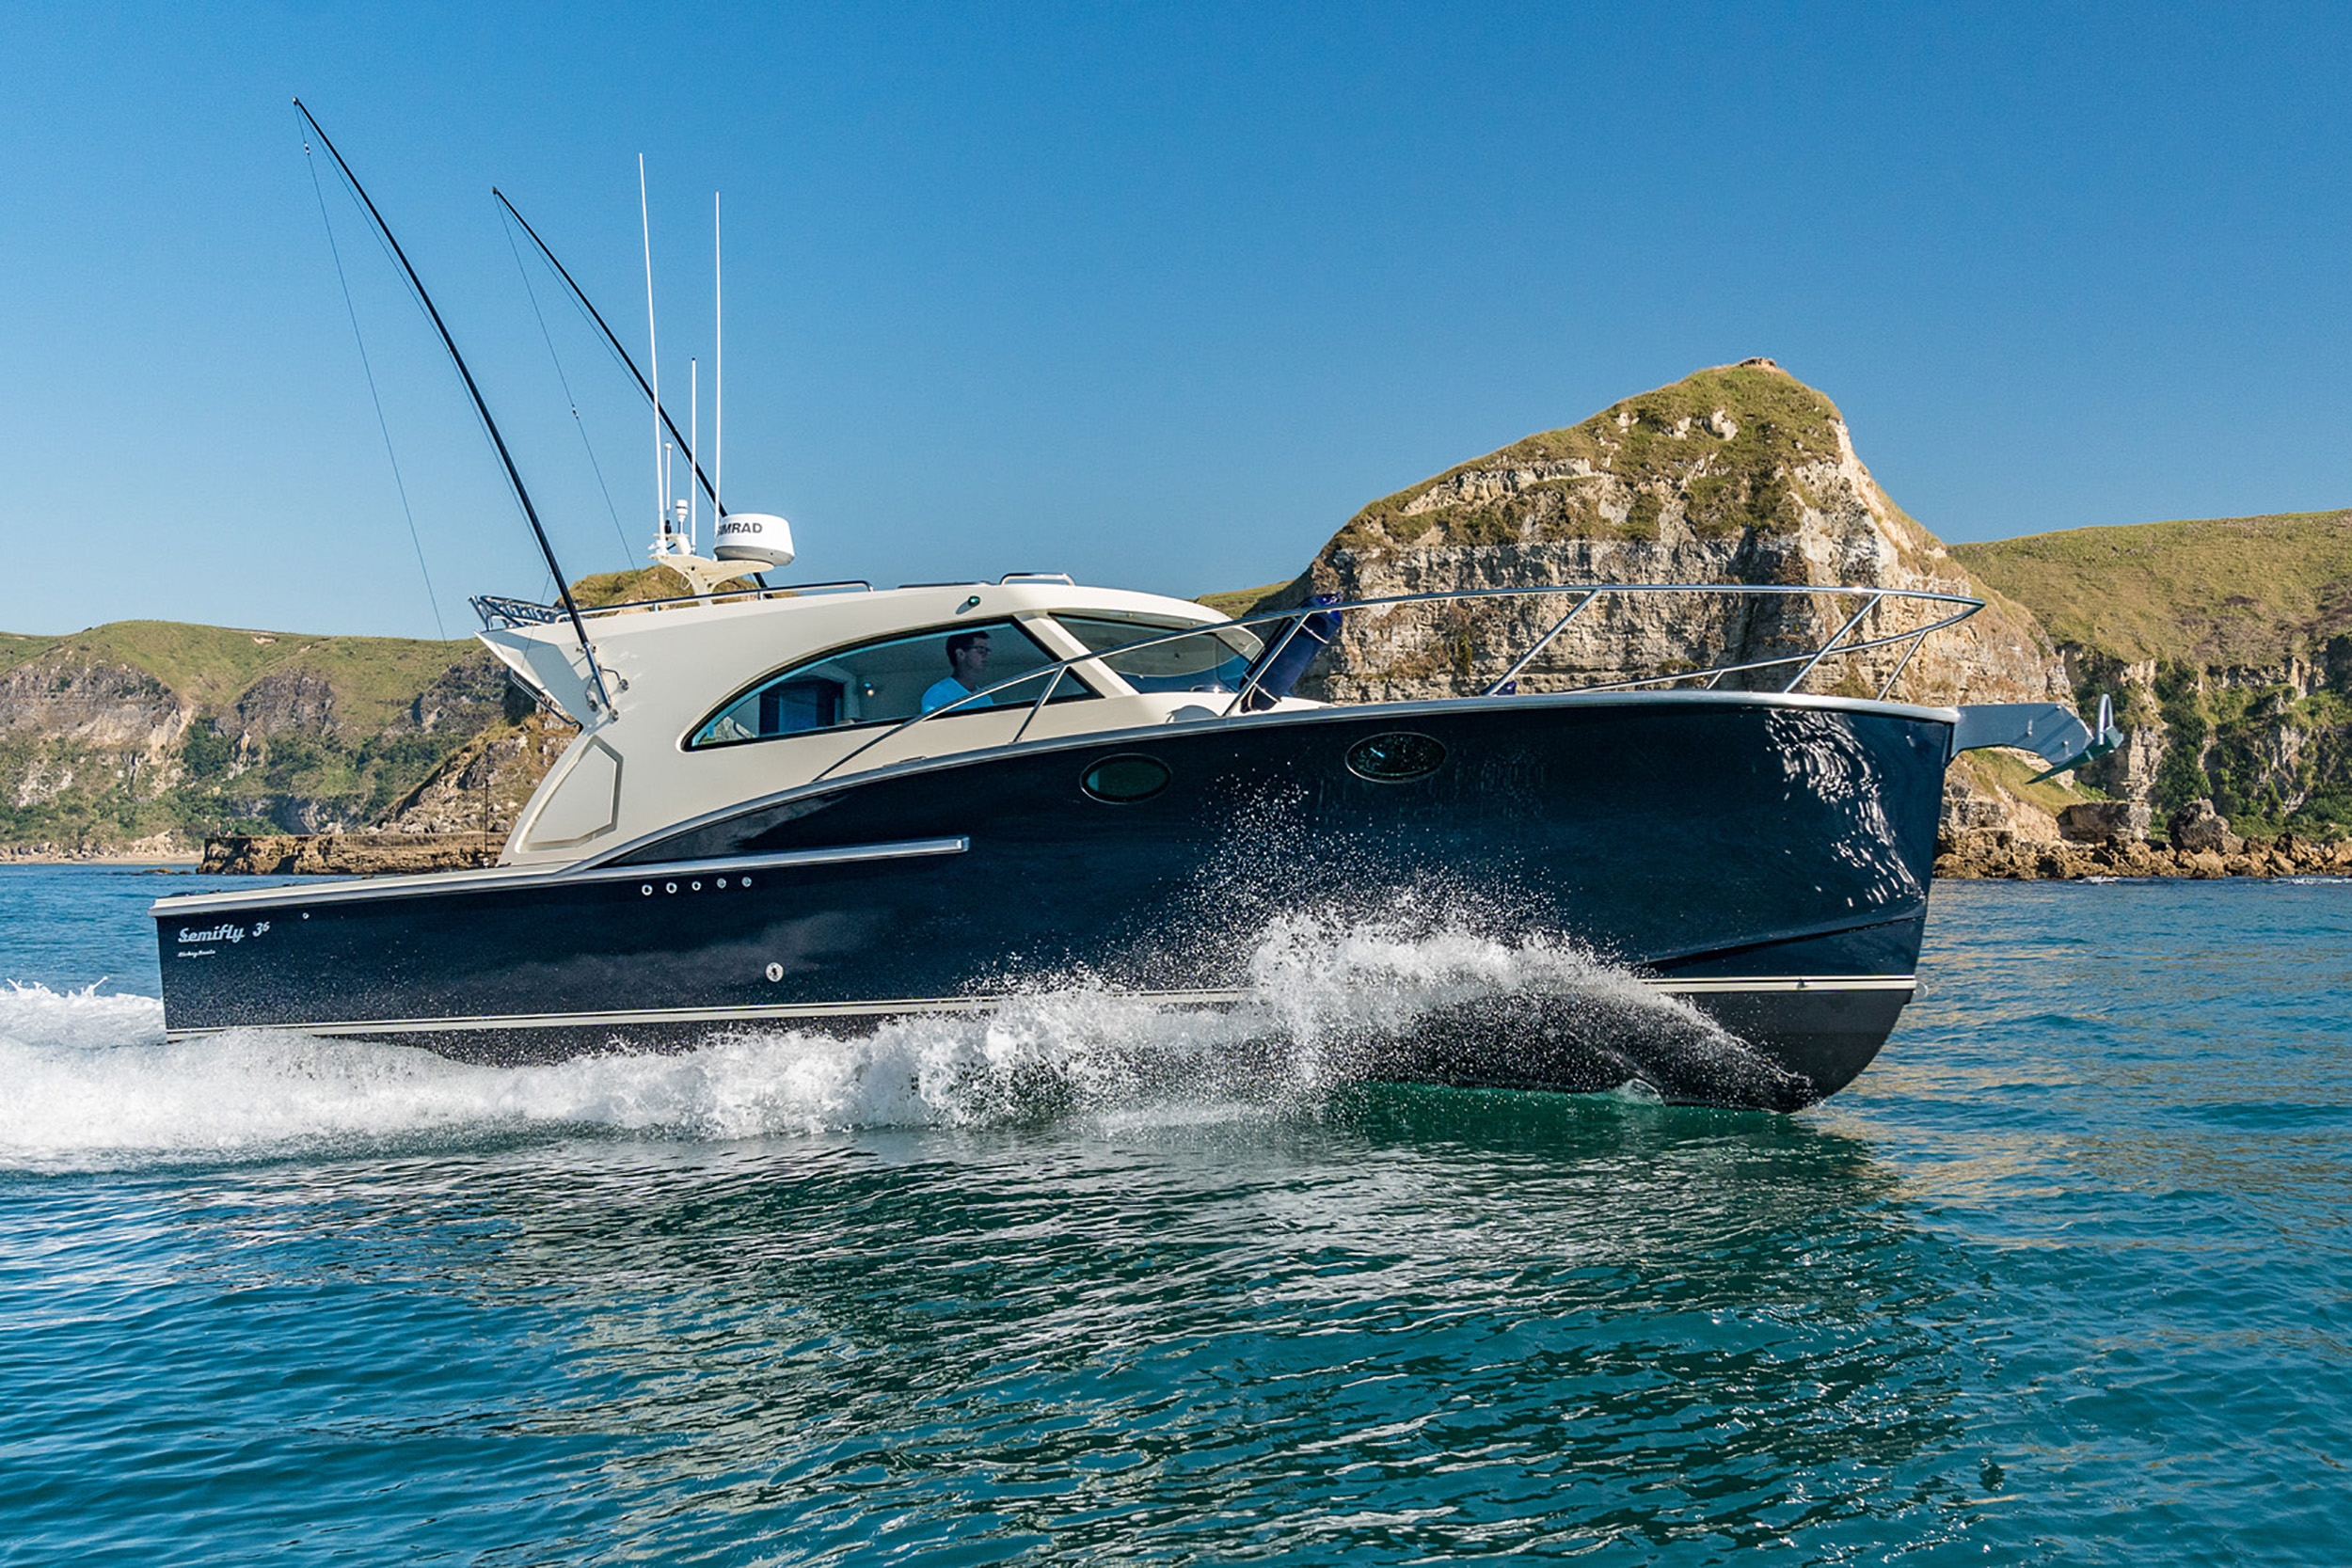 Fit for Purpose - A Review by Pacific Powerboat Magazine